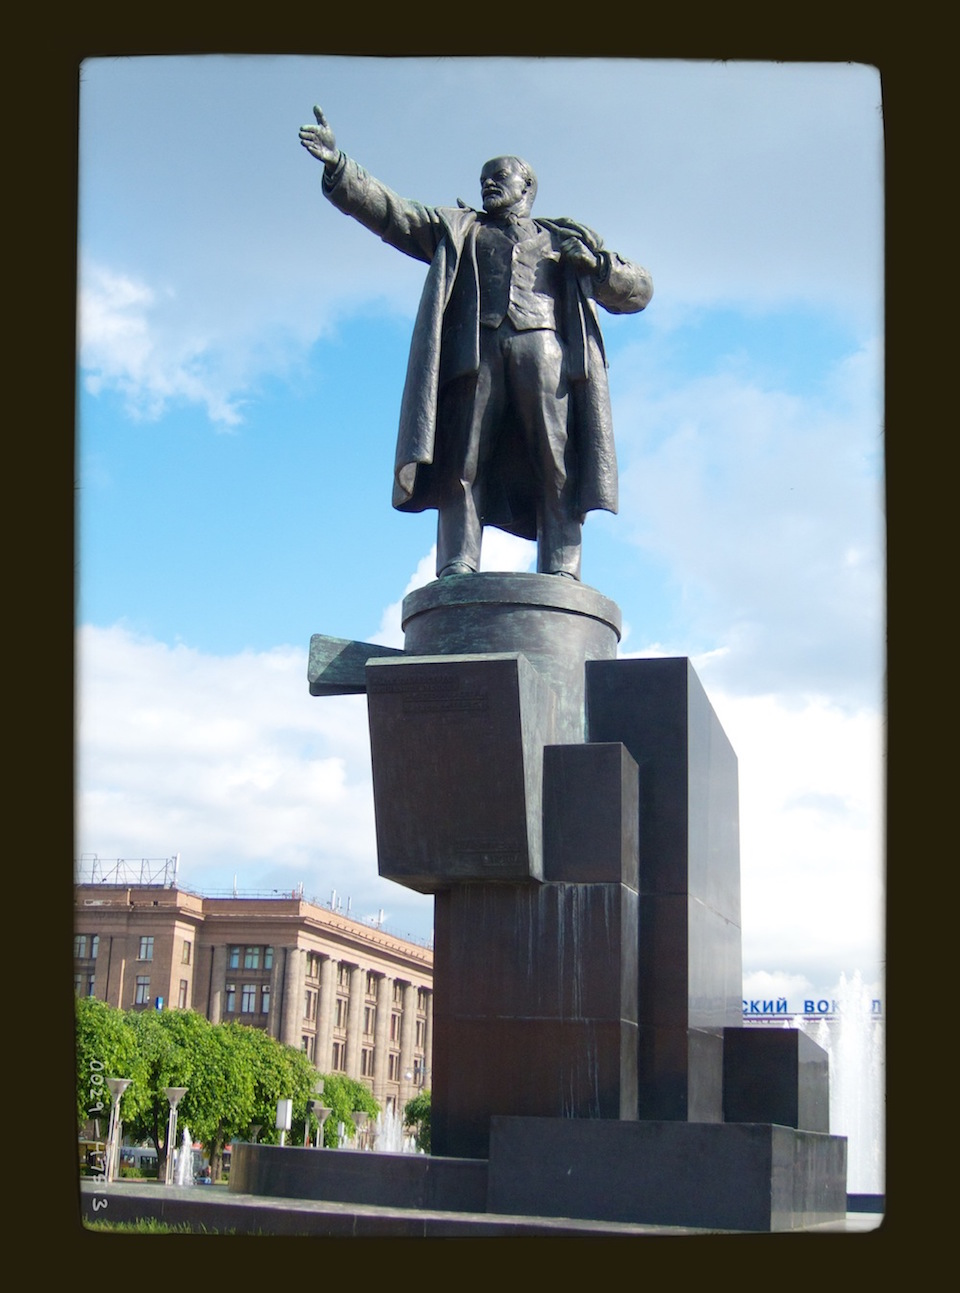 Lenin statues in Russia and Ukraine - outside Finland station